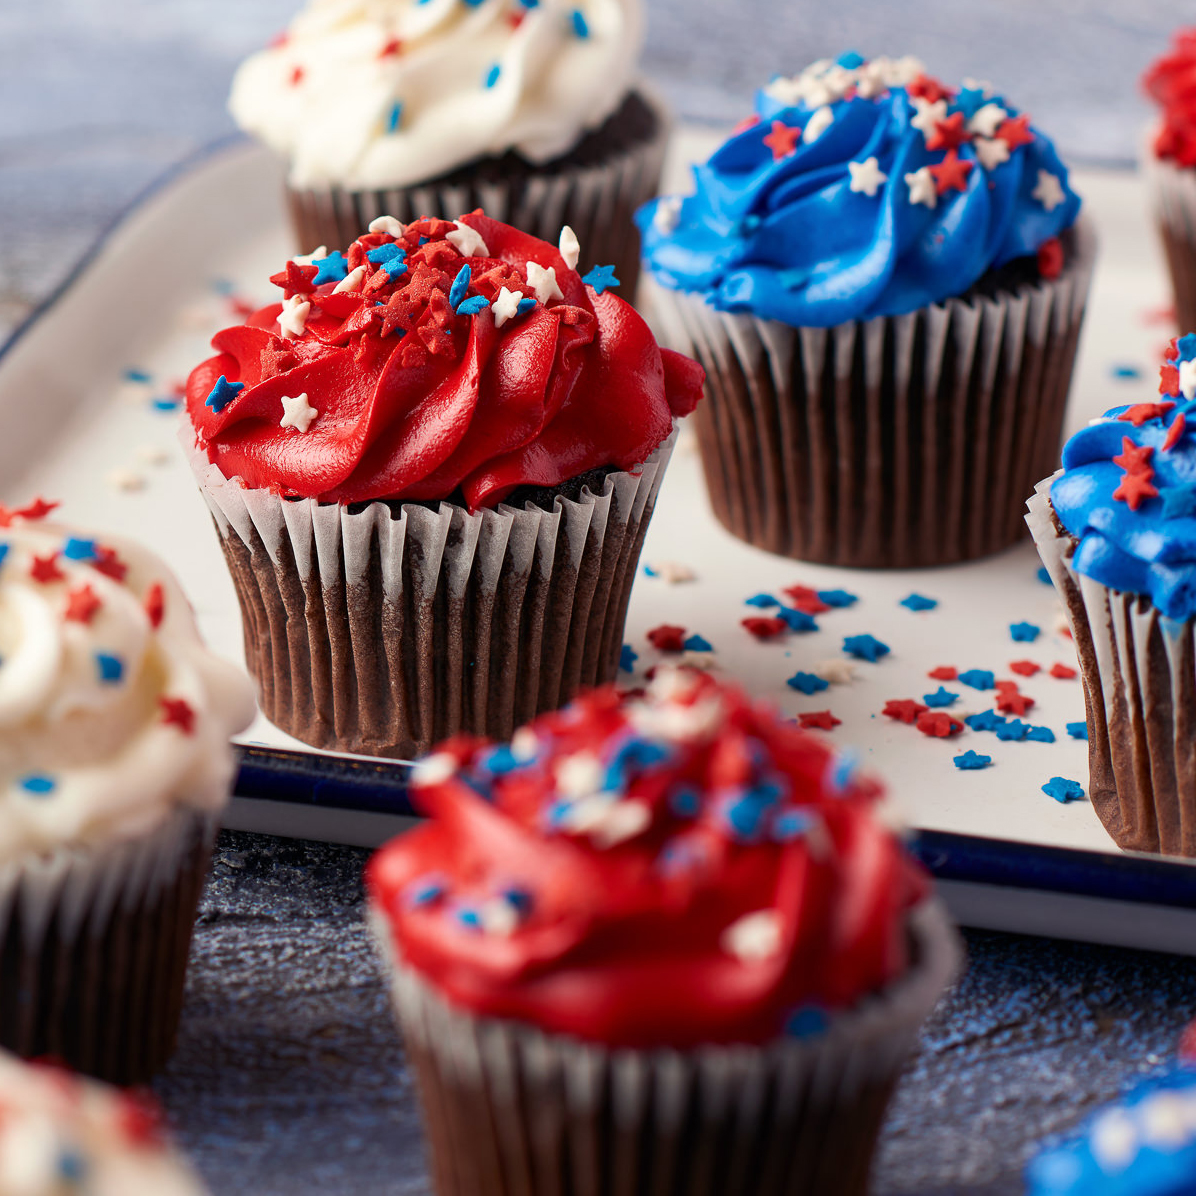 Fourth-of-July-Cupcakes-Food-Photography-for-Publix-Supermarkets-Photography-by-Nick-Pecori-Tampa-Commercial-Advertising-Photographer-1.jpg